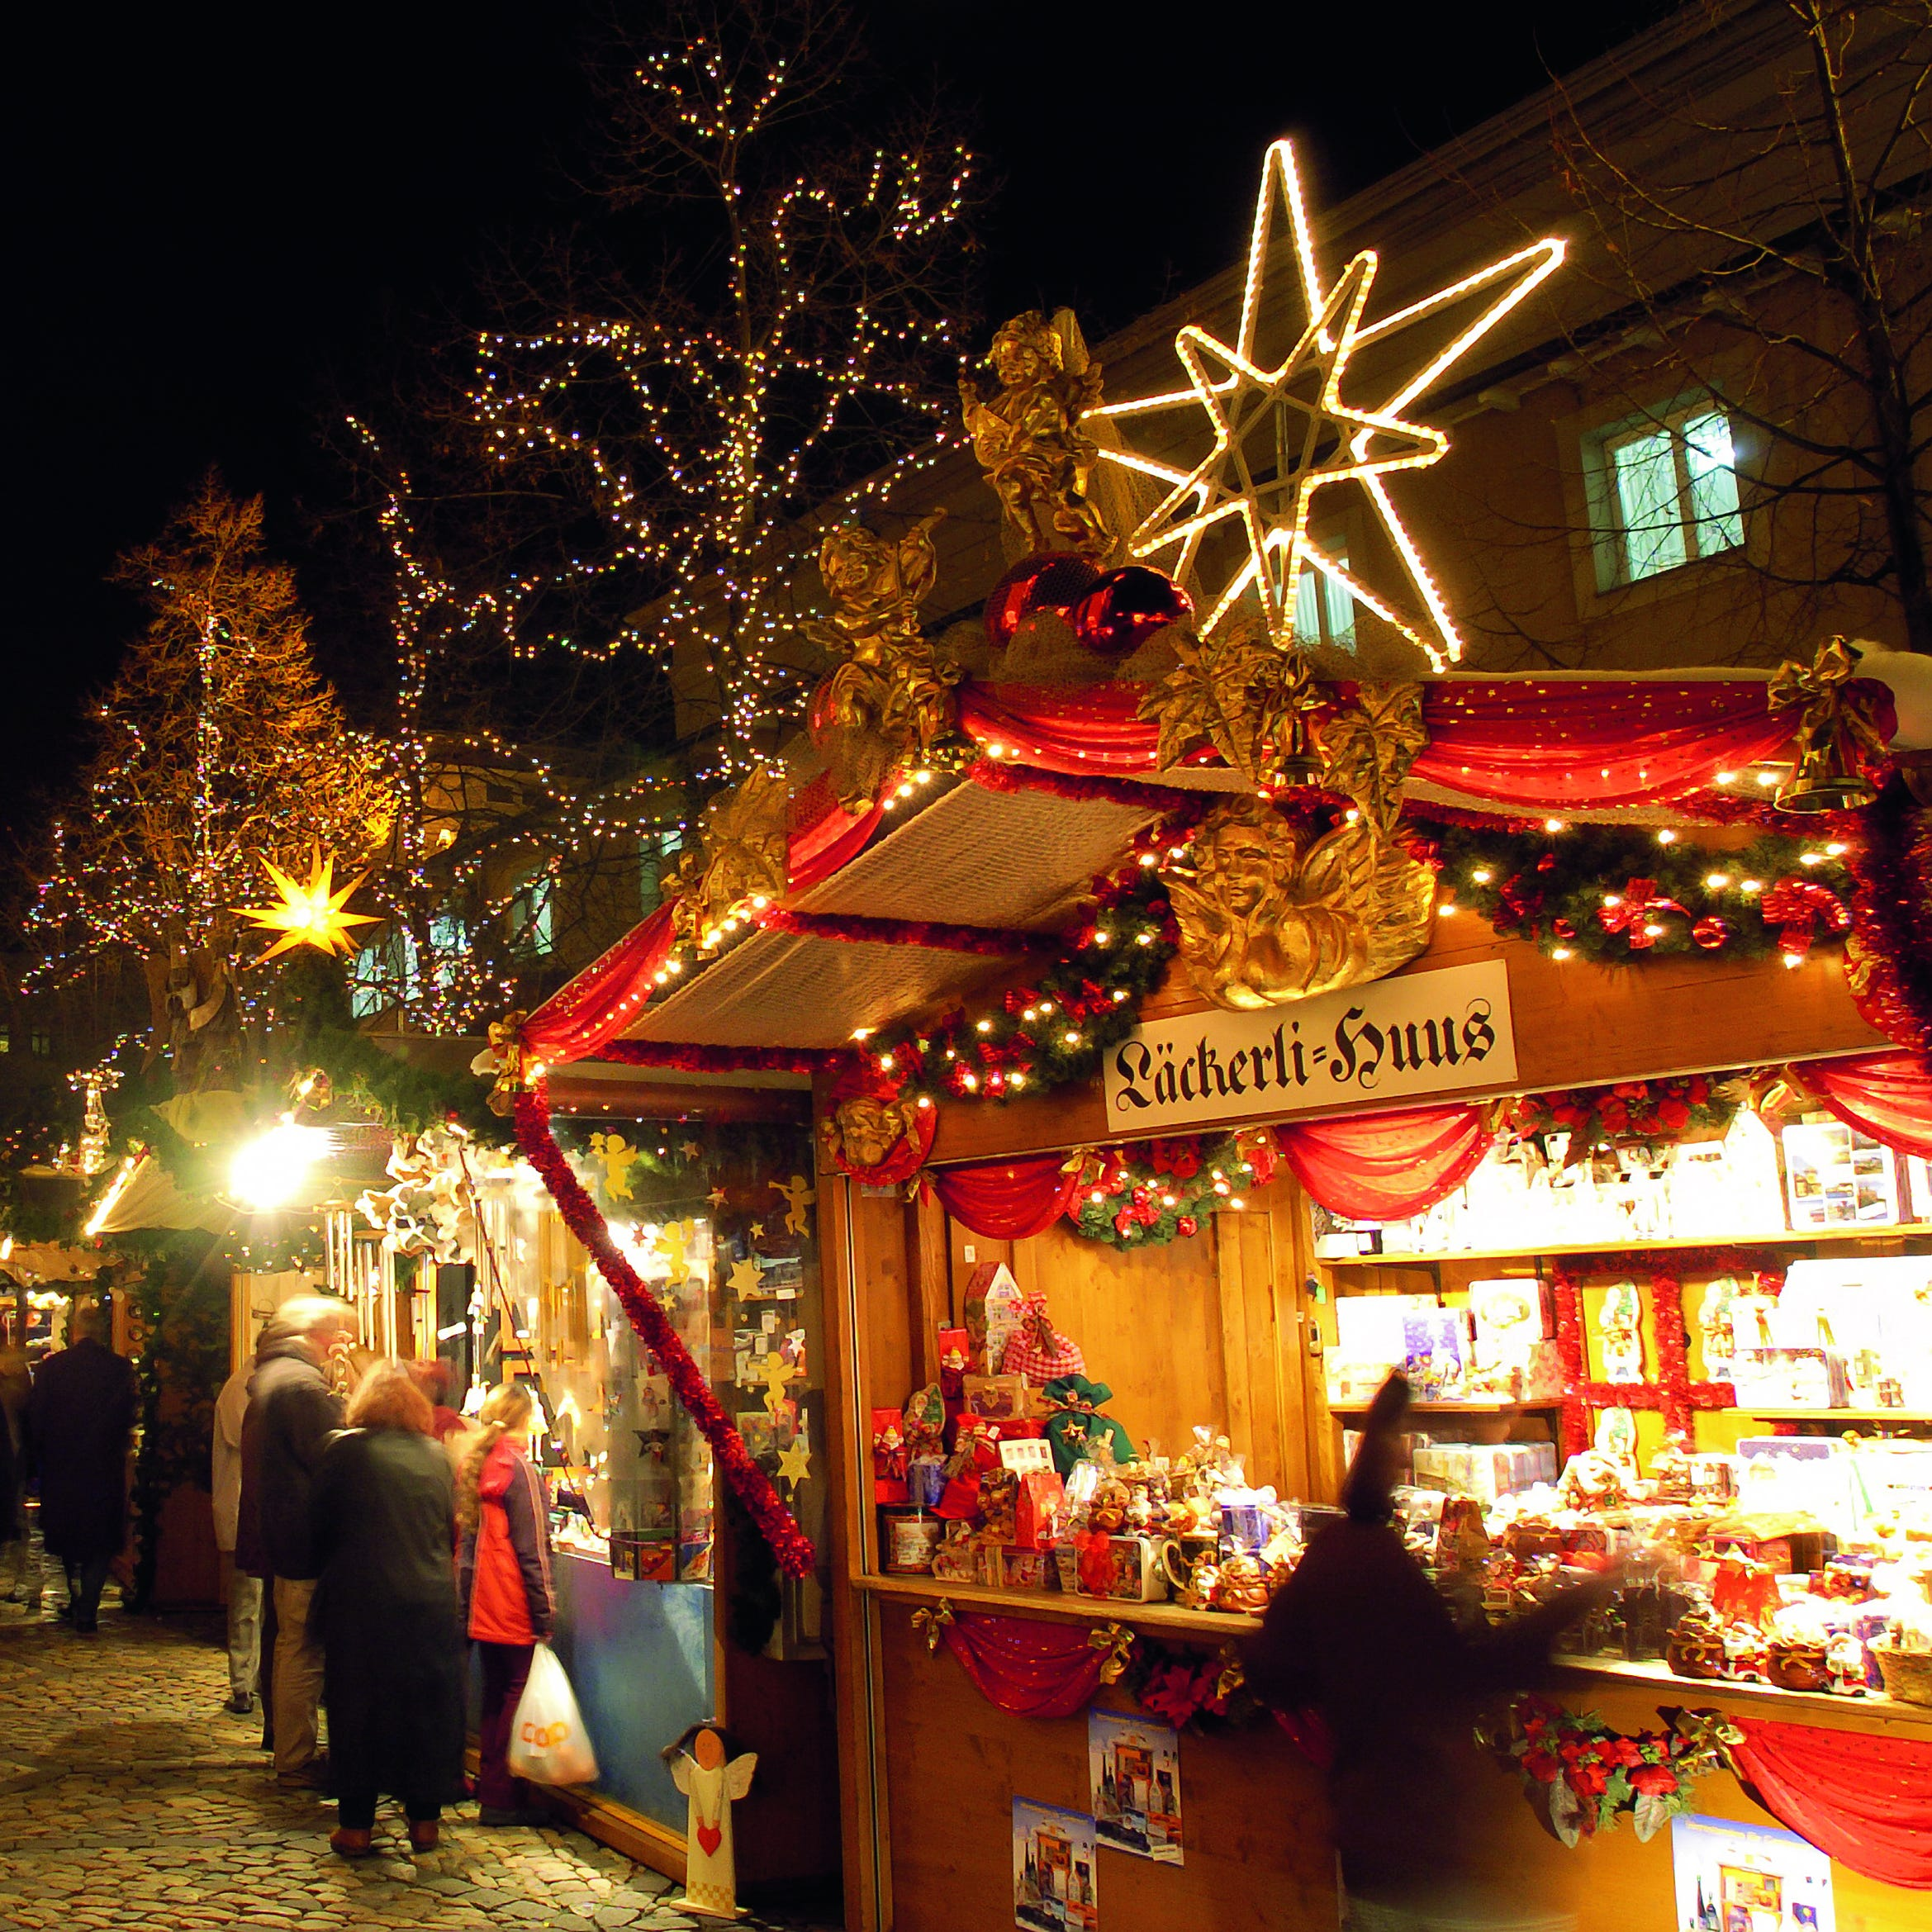 Christmas lights glow over the stalls at the Barfüsserplatz market.